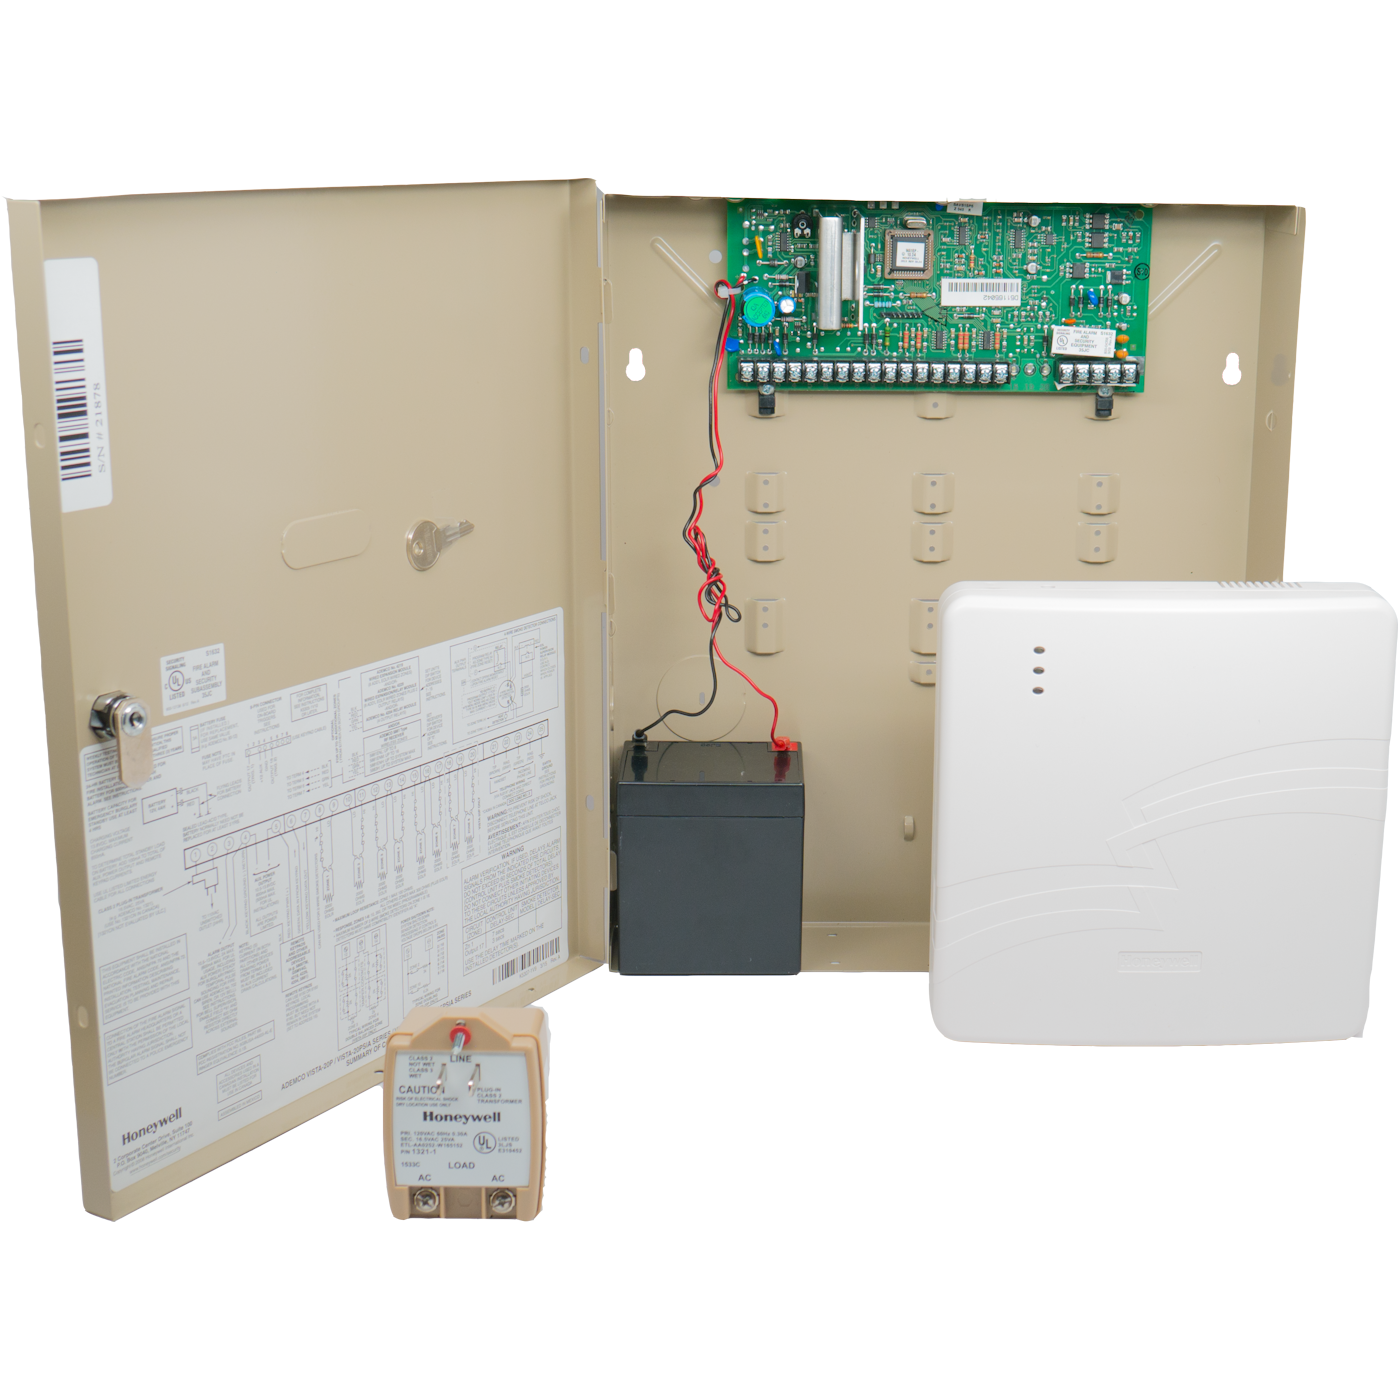 Honeywell vista 15p cellular 4g gsm security system honeywell vista 15p cellular 4g security system solutioingenieria Image collections